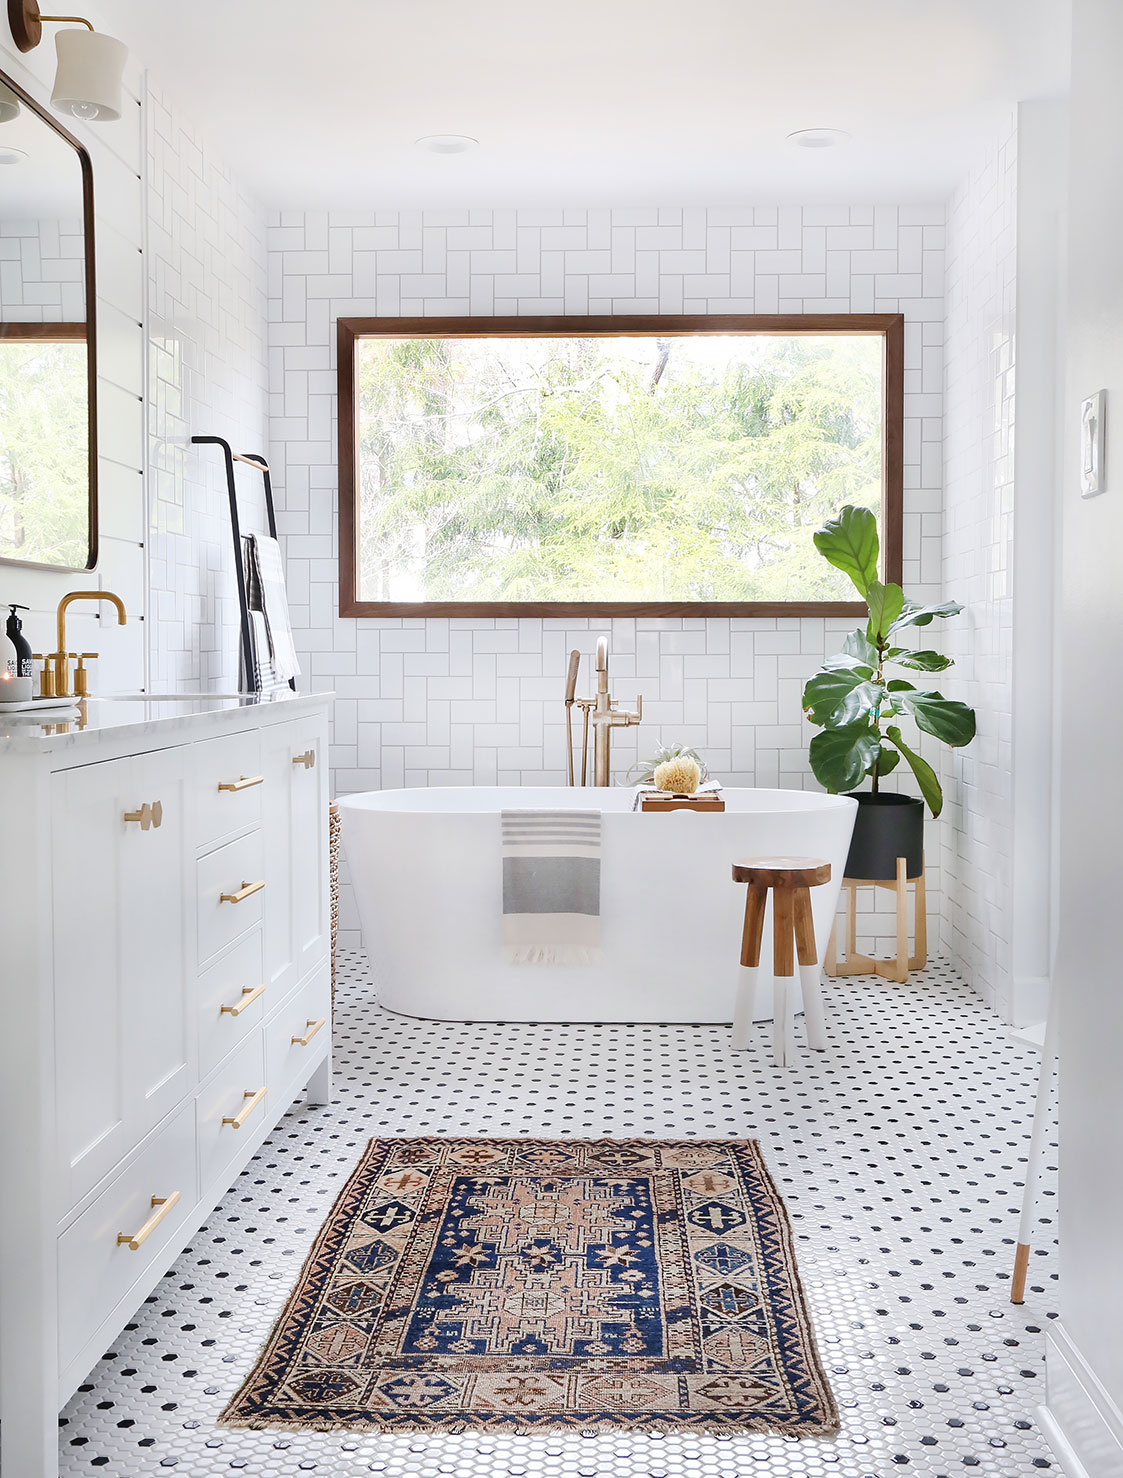 My master bathroom reveal! — Sunny Circle Studio